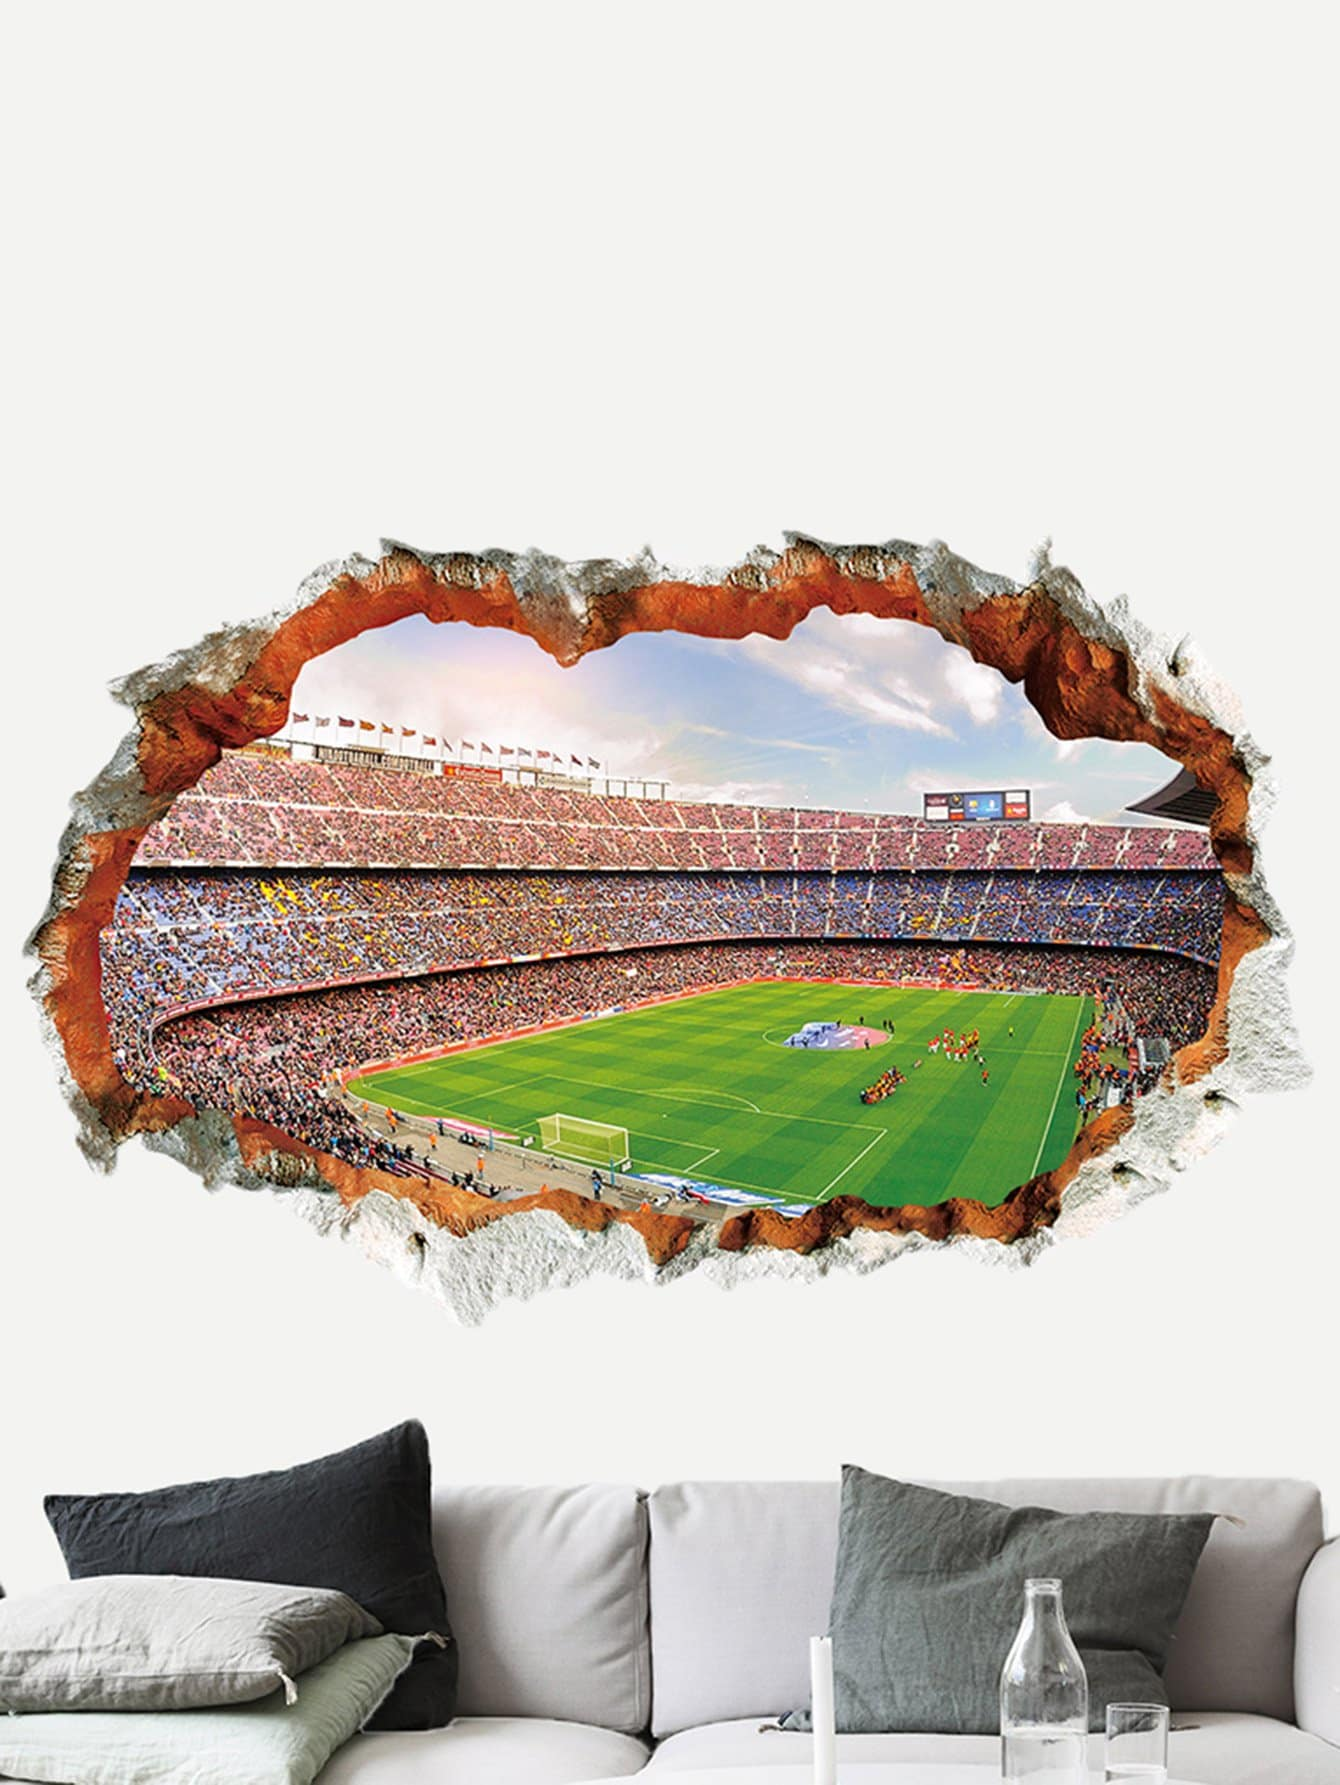 3D Football Field Wall Sticker practical joke rubber broken fingers with artificial blood gel